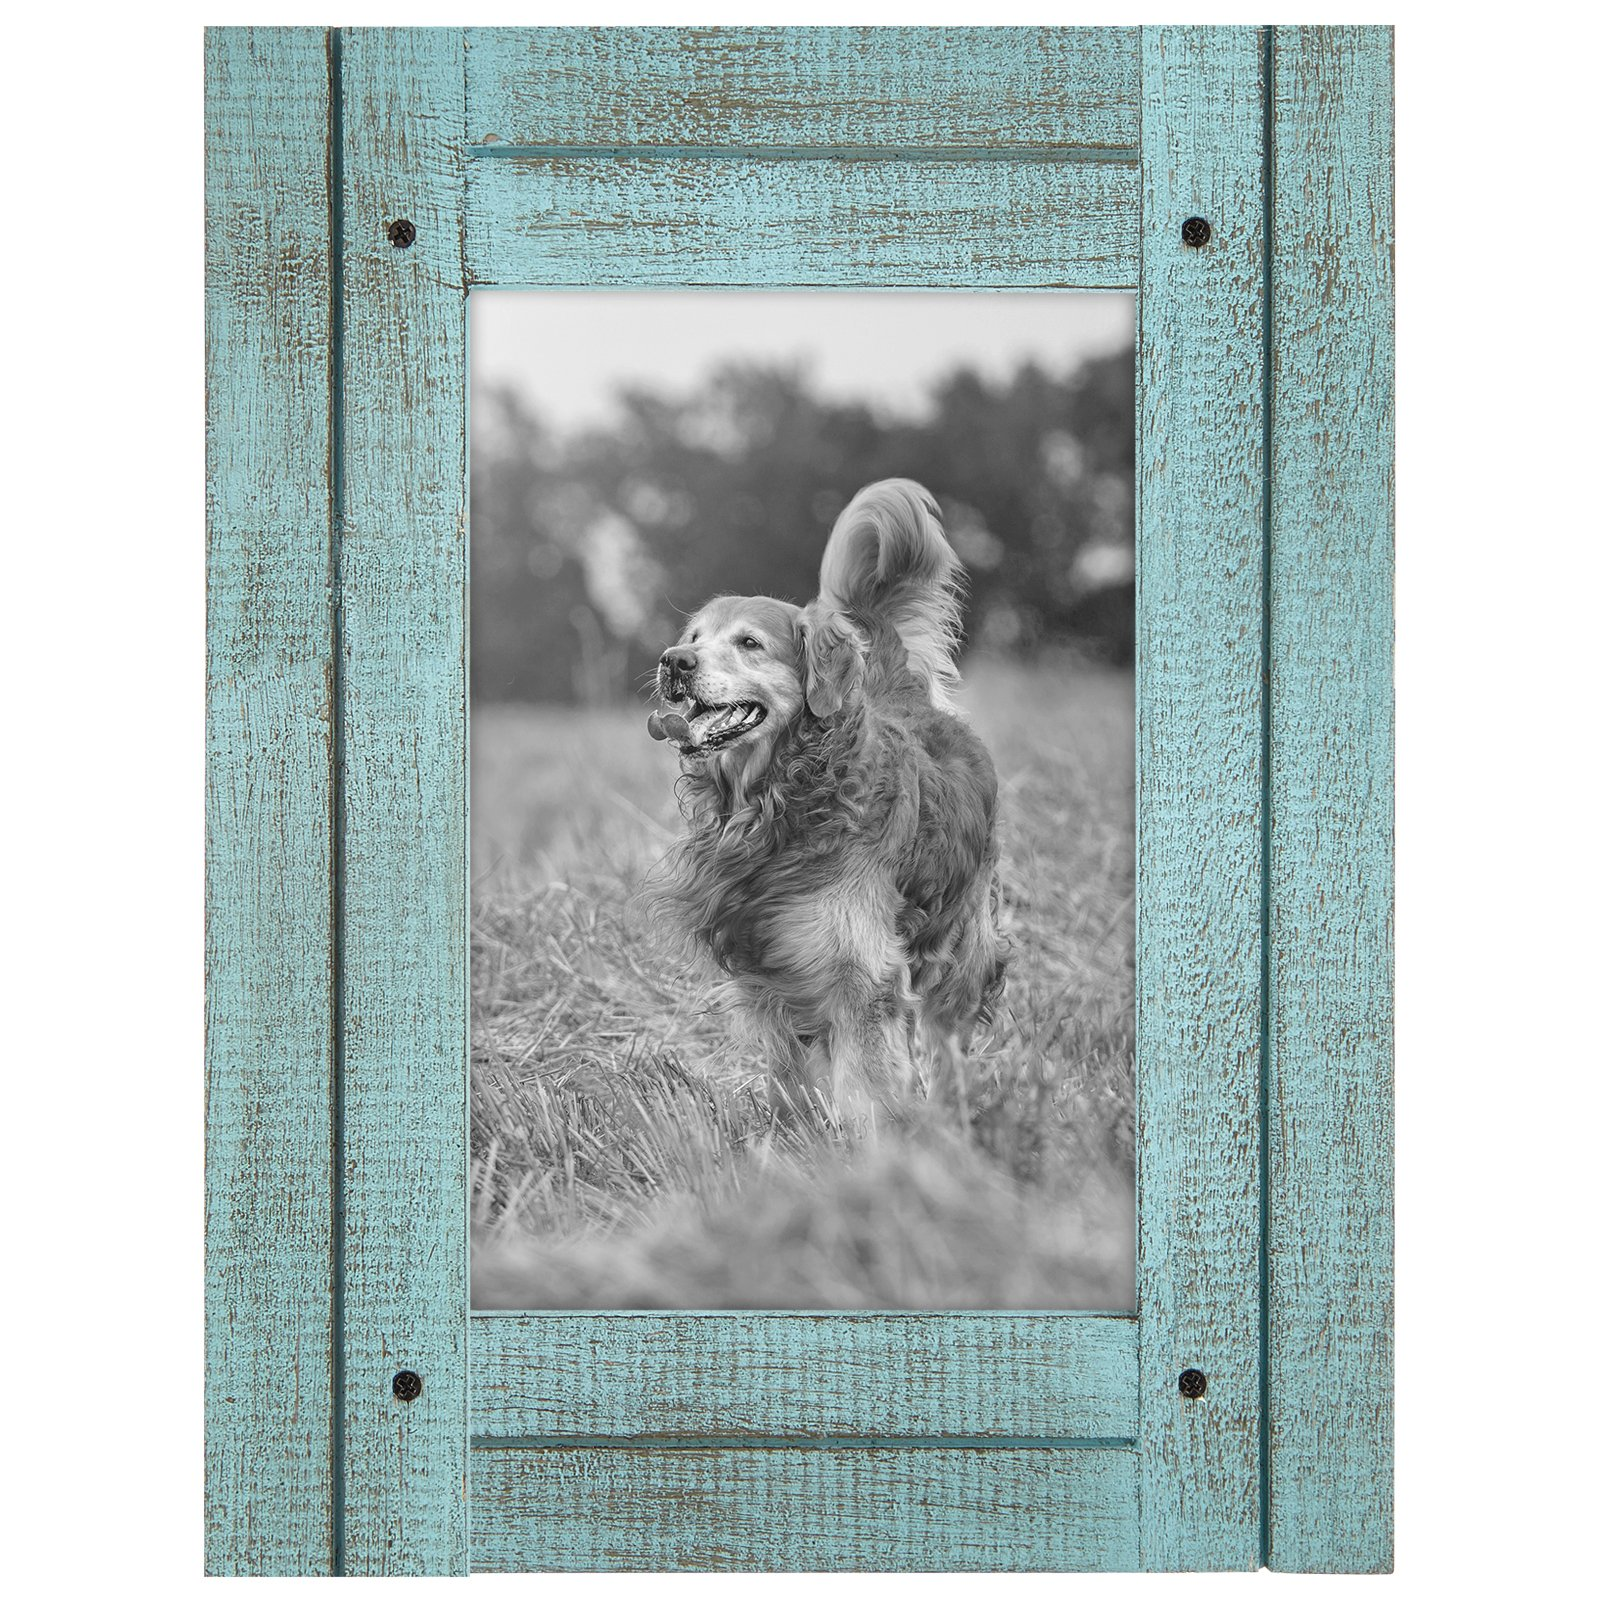 Americanflat 4x6 Turquoise Blue Distressed Wood Frame - Made to Display 4x6 Photos - Ready to Hang - Ready to Stand - Built-in Easel